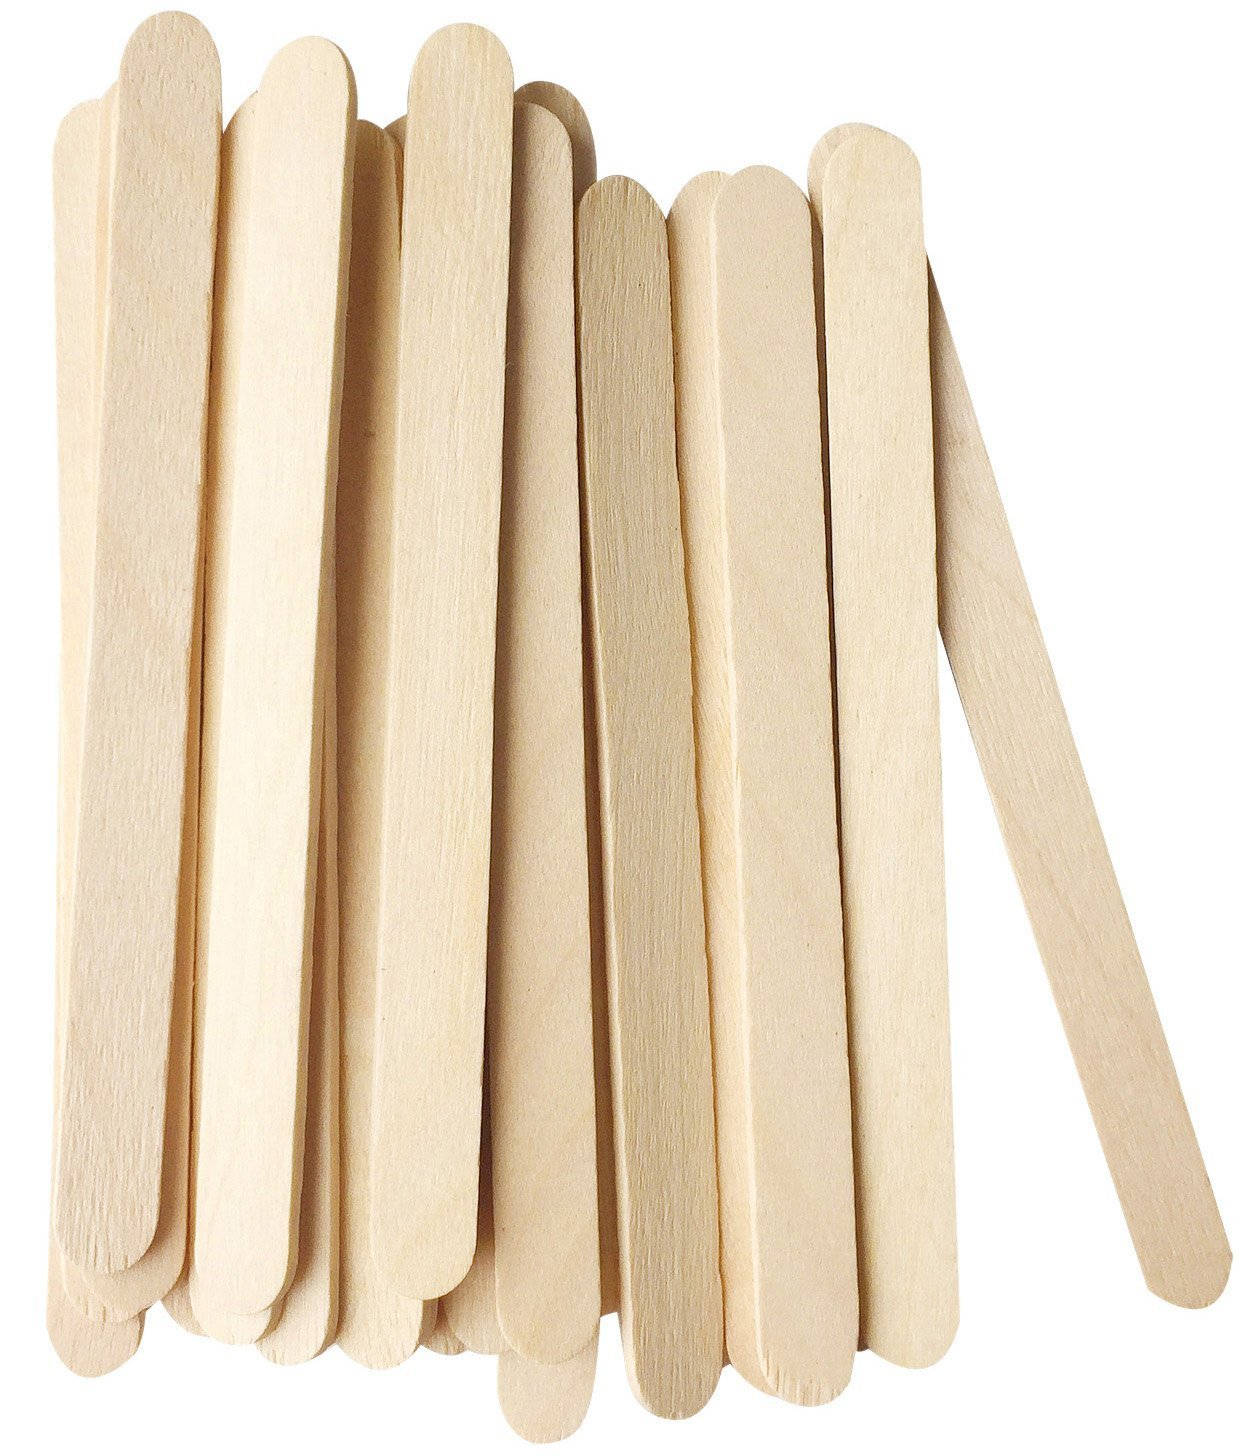 popsicle sticks.jpg